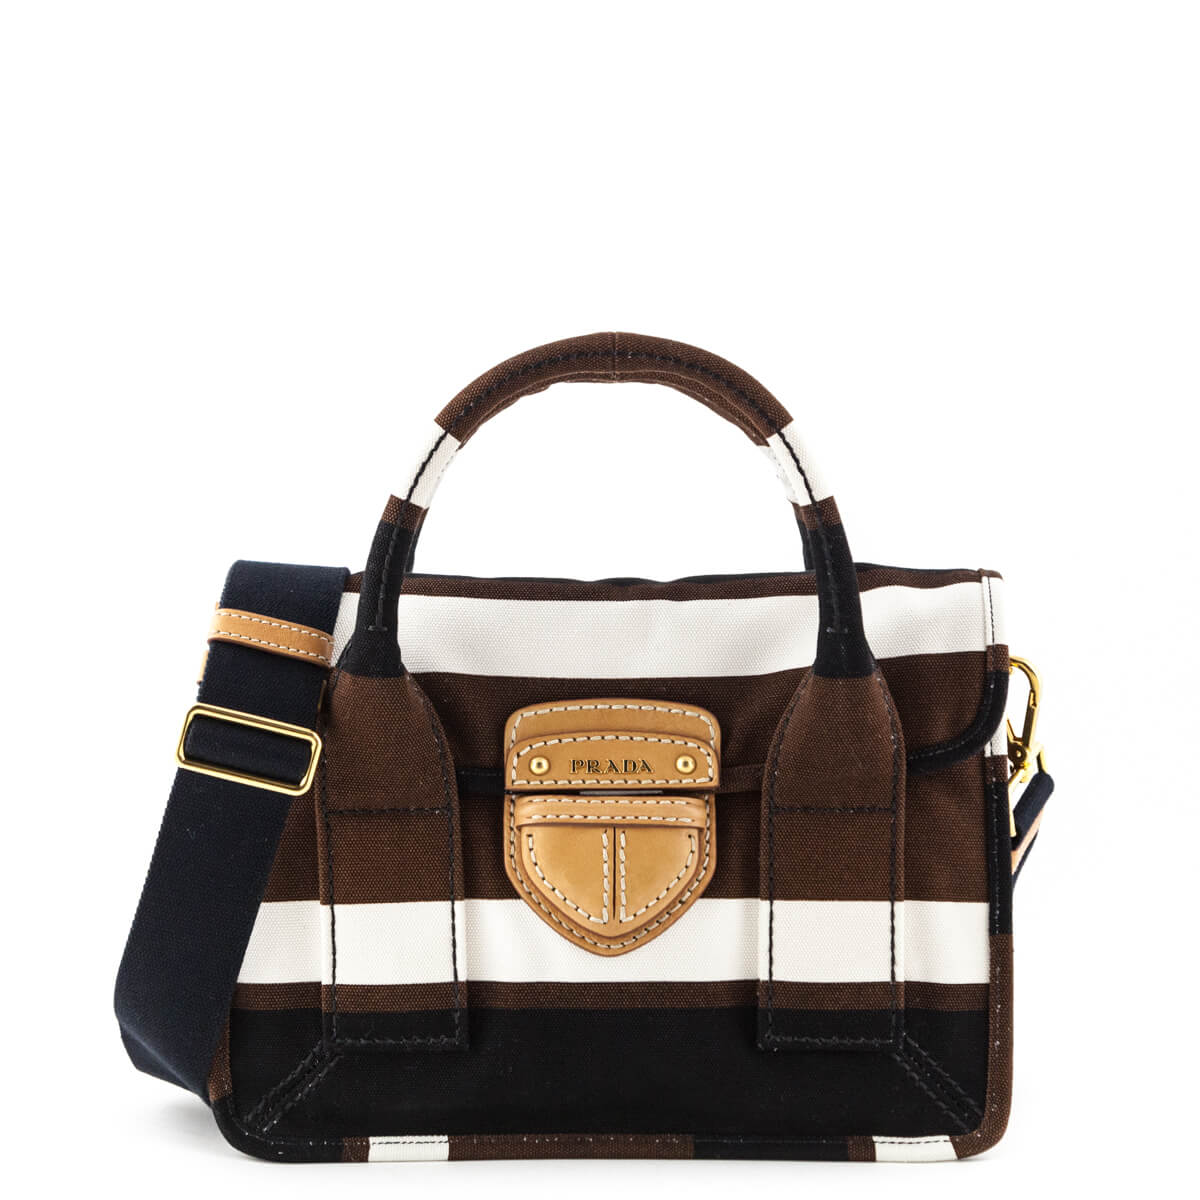 6715eaf68550 Prada White Brown & Black Canapa Righe Satchel bag - LOVE that BAG -  Preowned Authentic ...